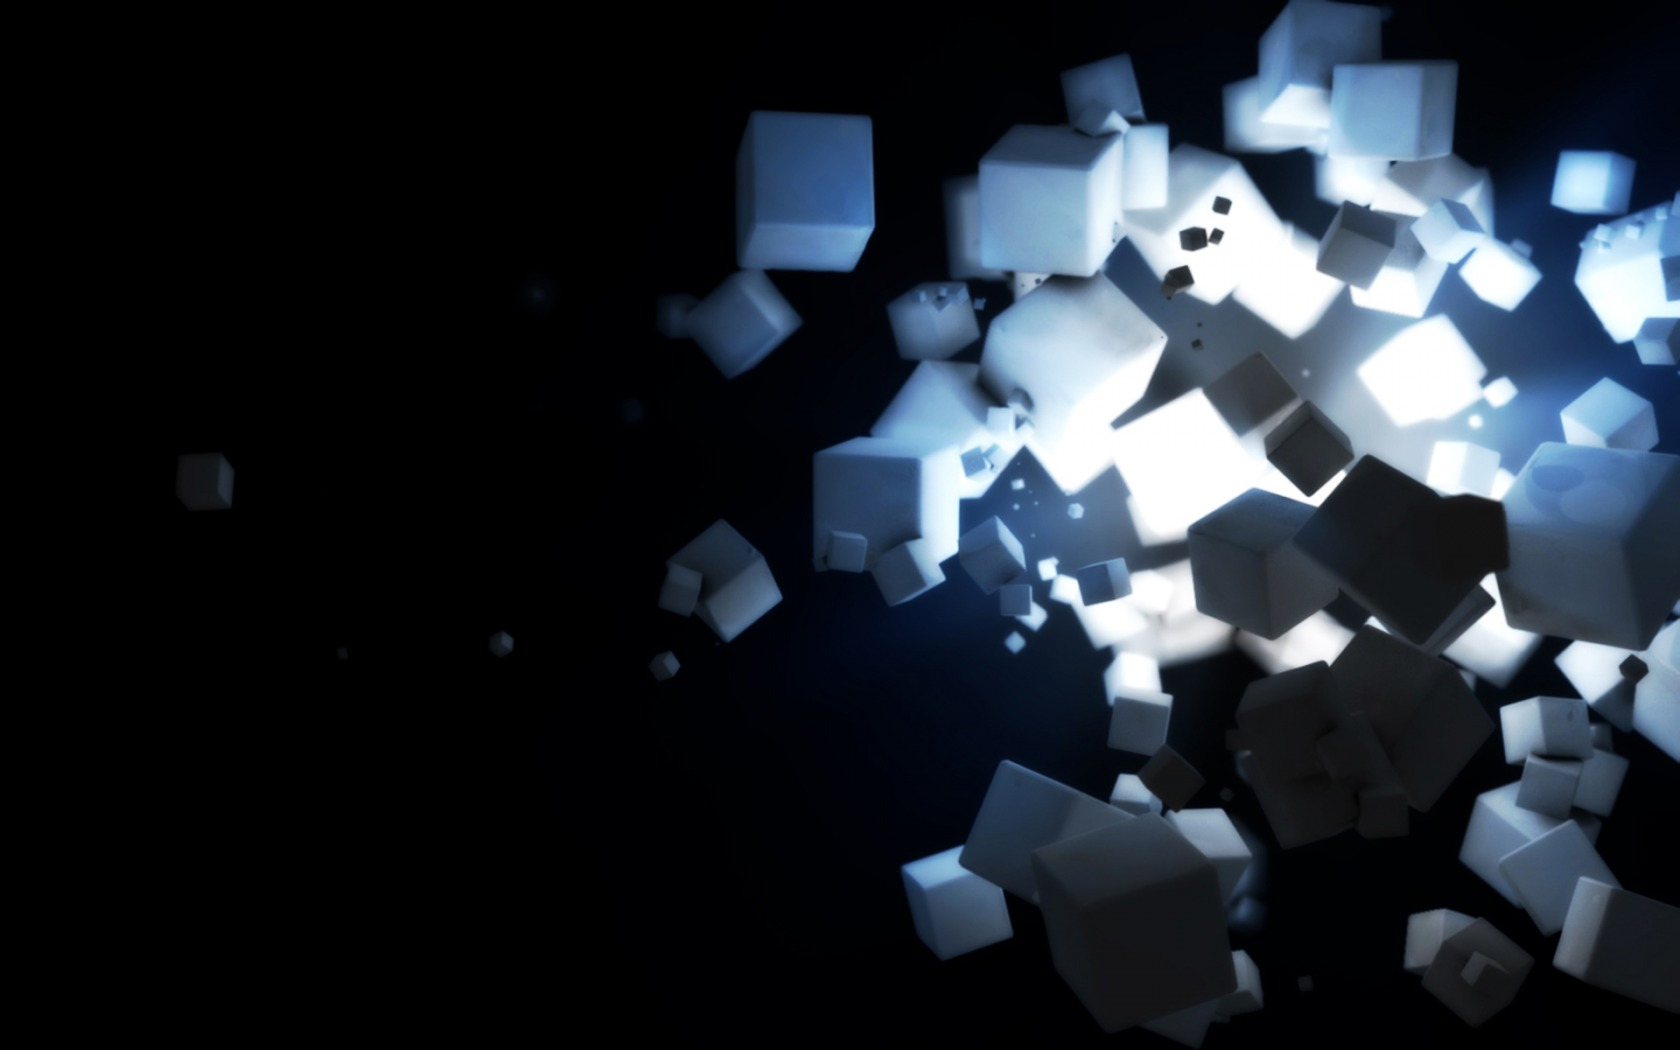 Ps3 Animated Wallpaper Cubes Wallpaper 3d Models 3d Wallpapers In Jpg Format For